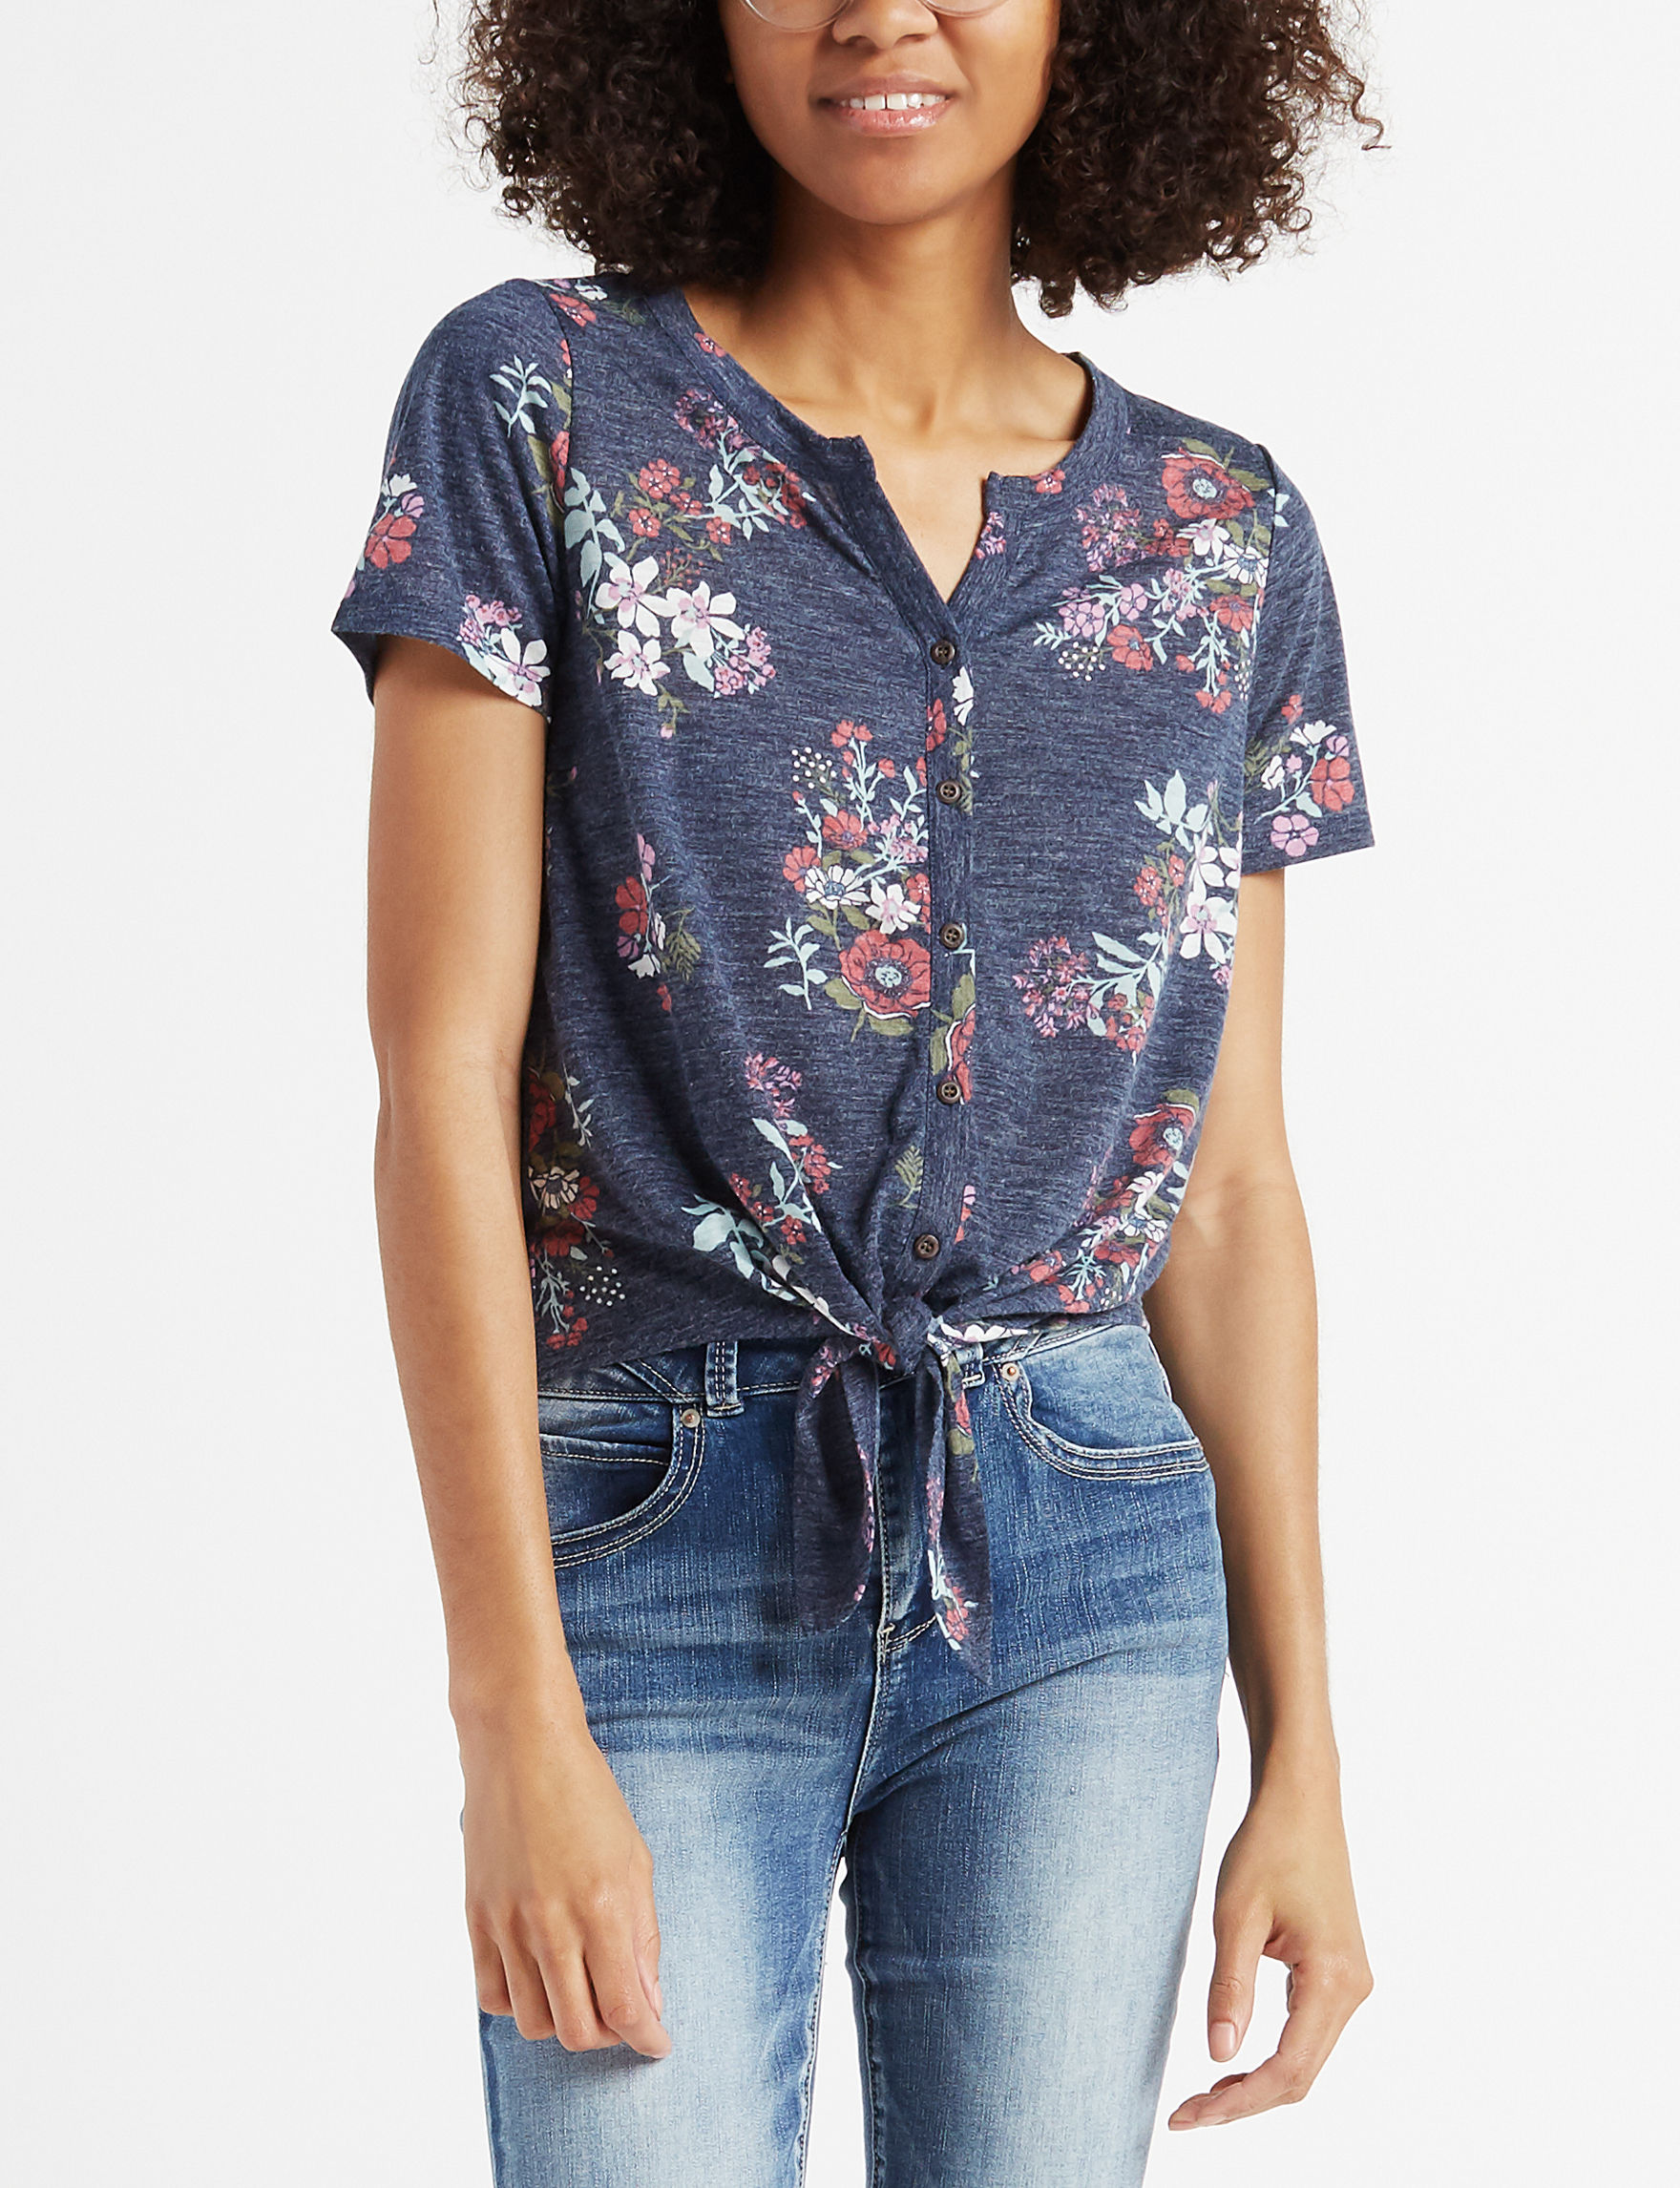 WallFlower Navy Floral Shirts & Blouses